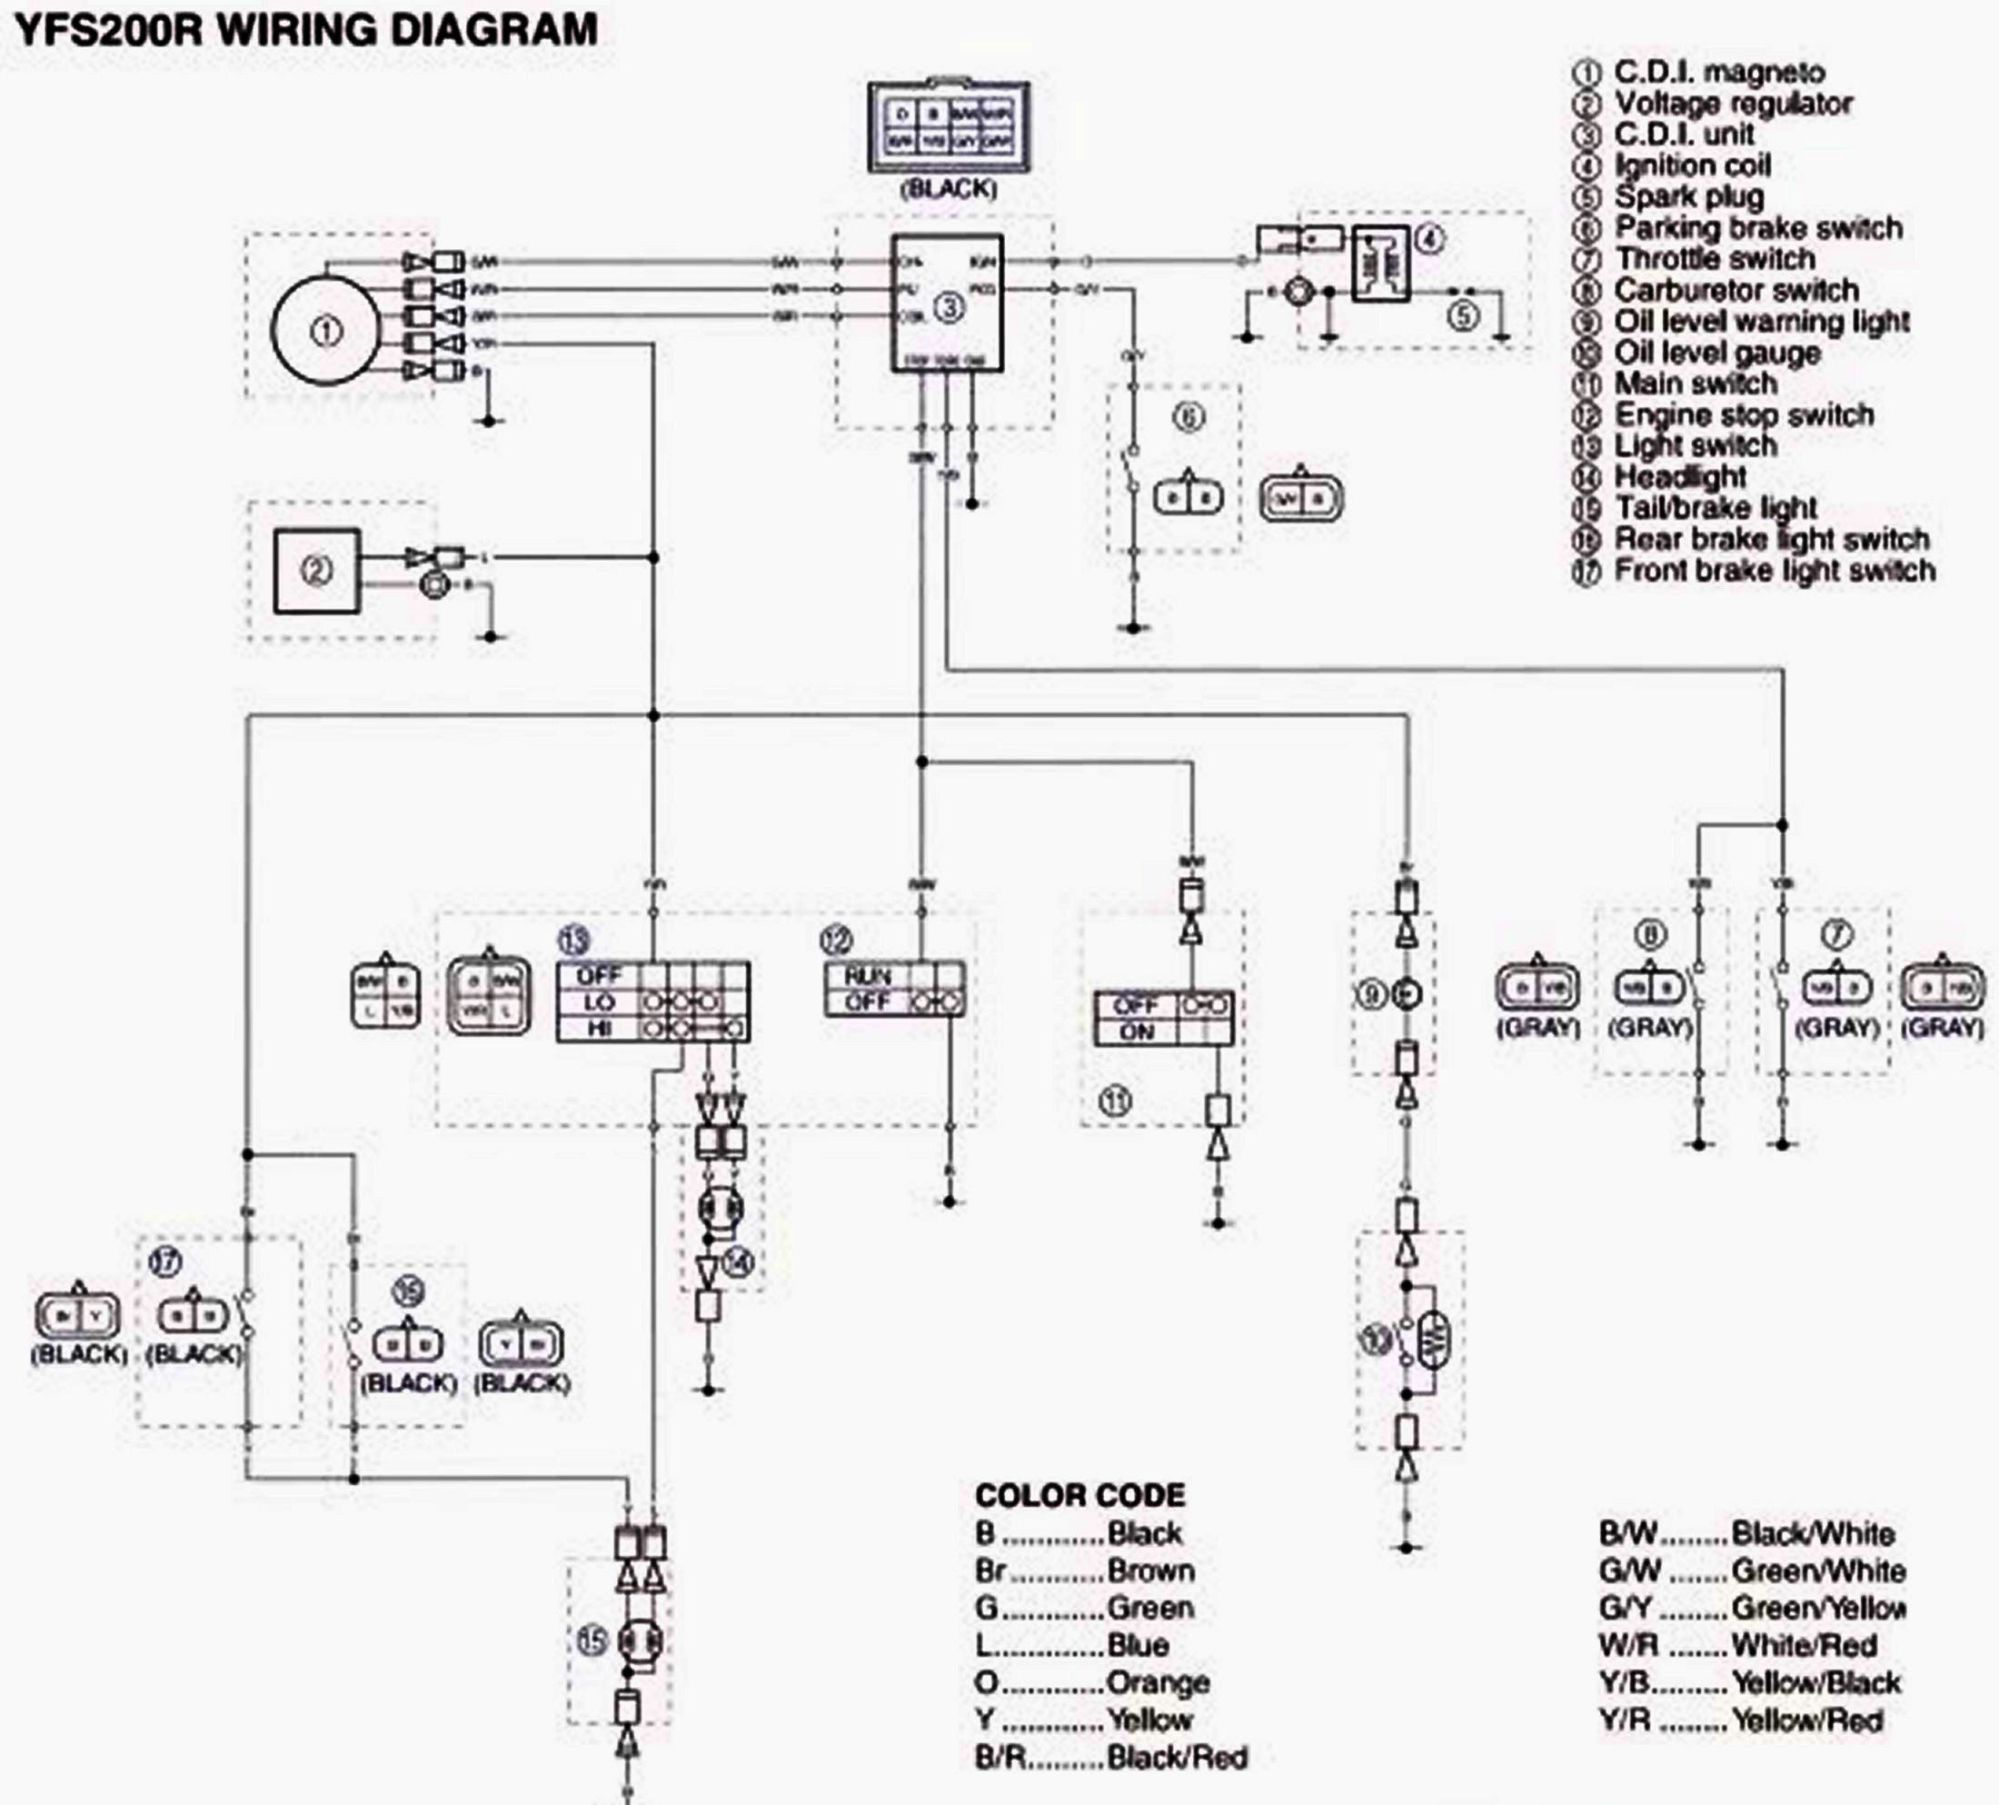 hight resolution of stock wiring diagrams blasterforum com rh blasterforum com 1996 yamaha blaster manual yamaha blaster wiring harness